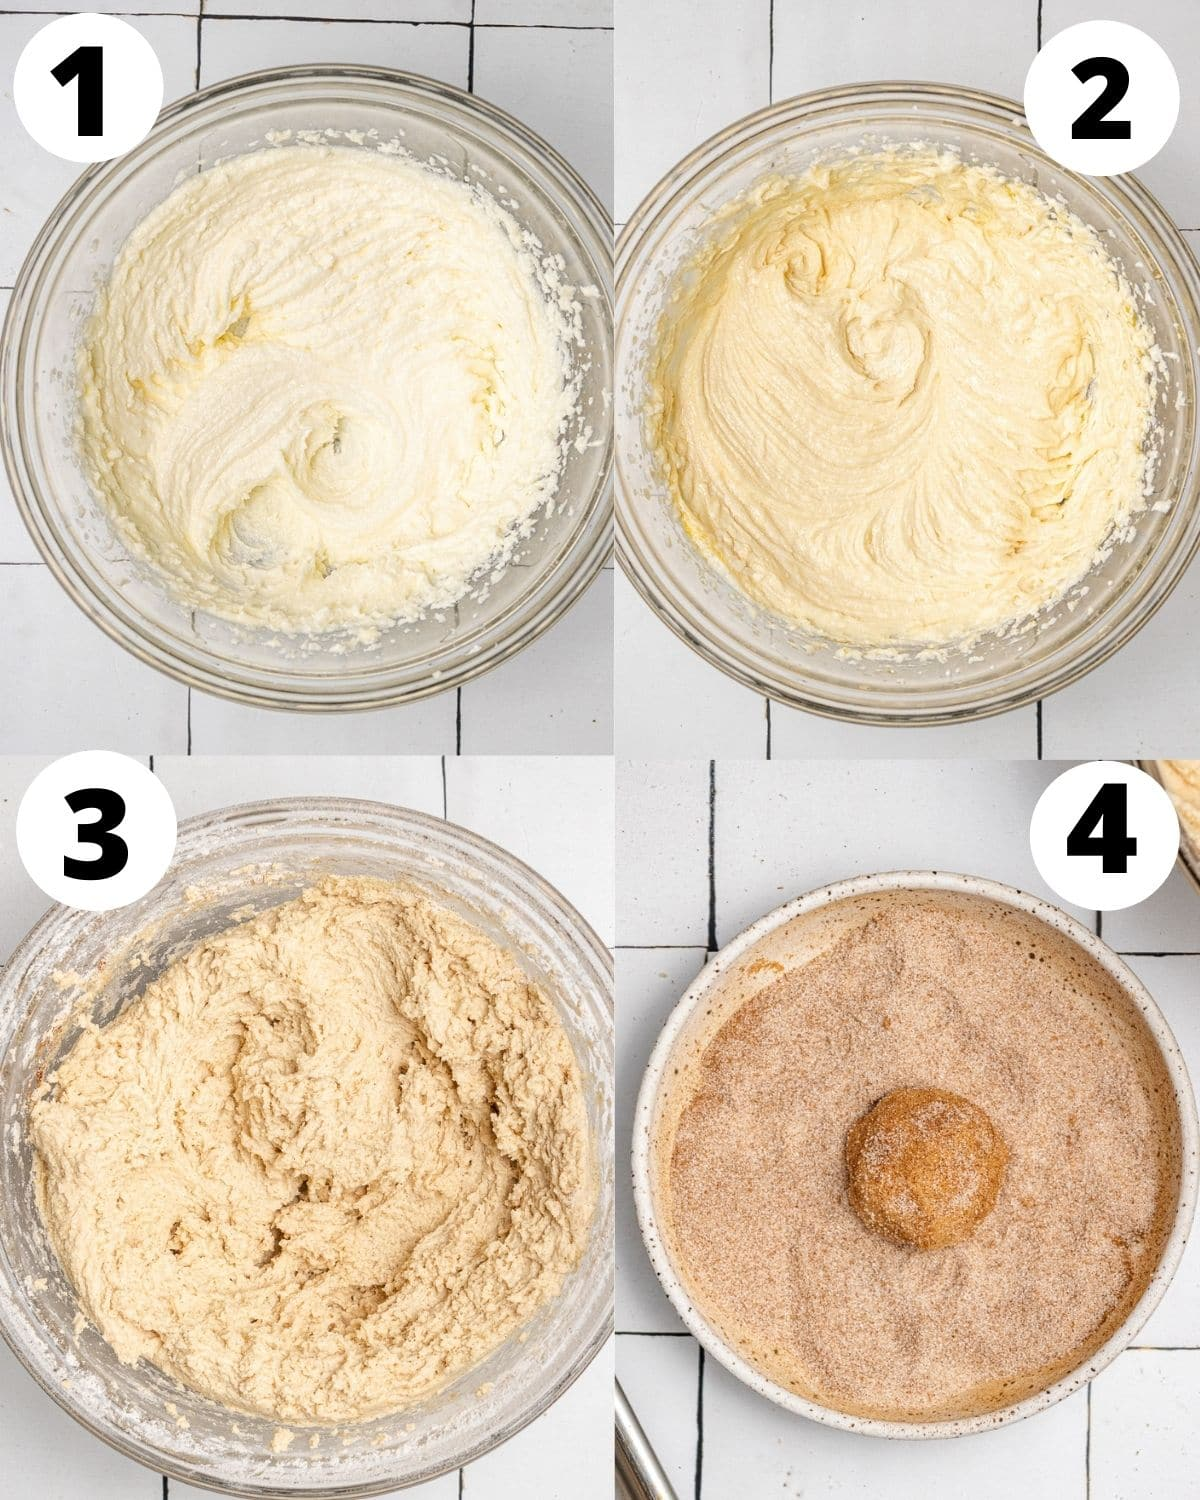 step by step process showing how to make snickerdoodle cookies